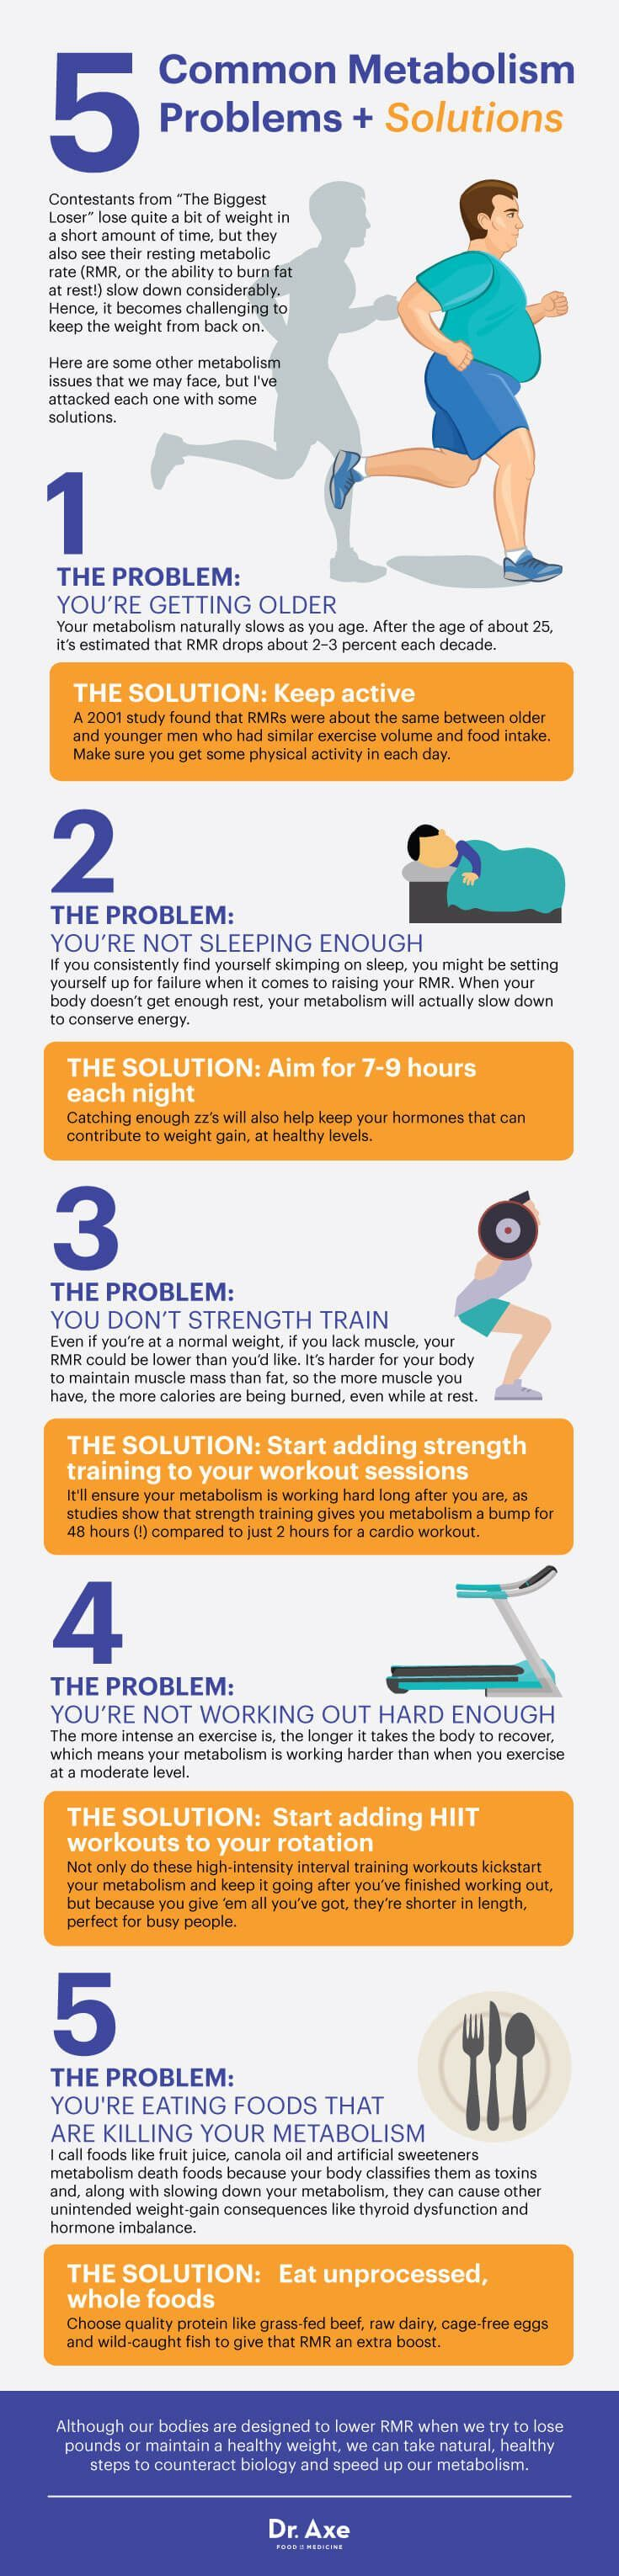 Going on a diet or purchasing the latest weight-loss products might seem like a quick way to shed pounds. But, you might not get the results you hoped for if you don't take your metabolism into account. Here are 5 daily habits that can speed up your metabolism. Source:http://draxe.com/